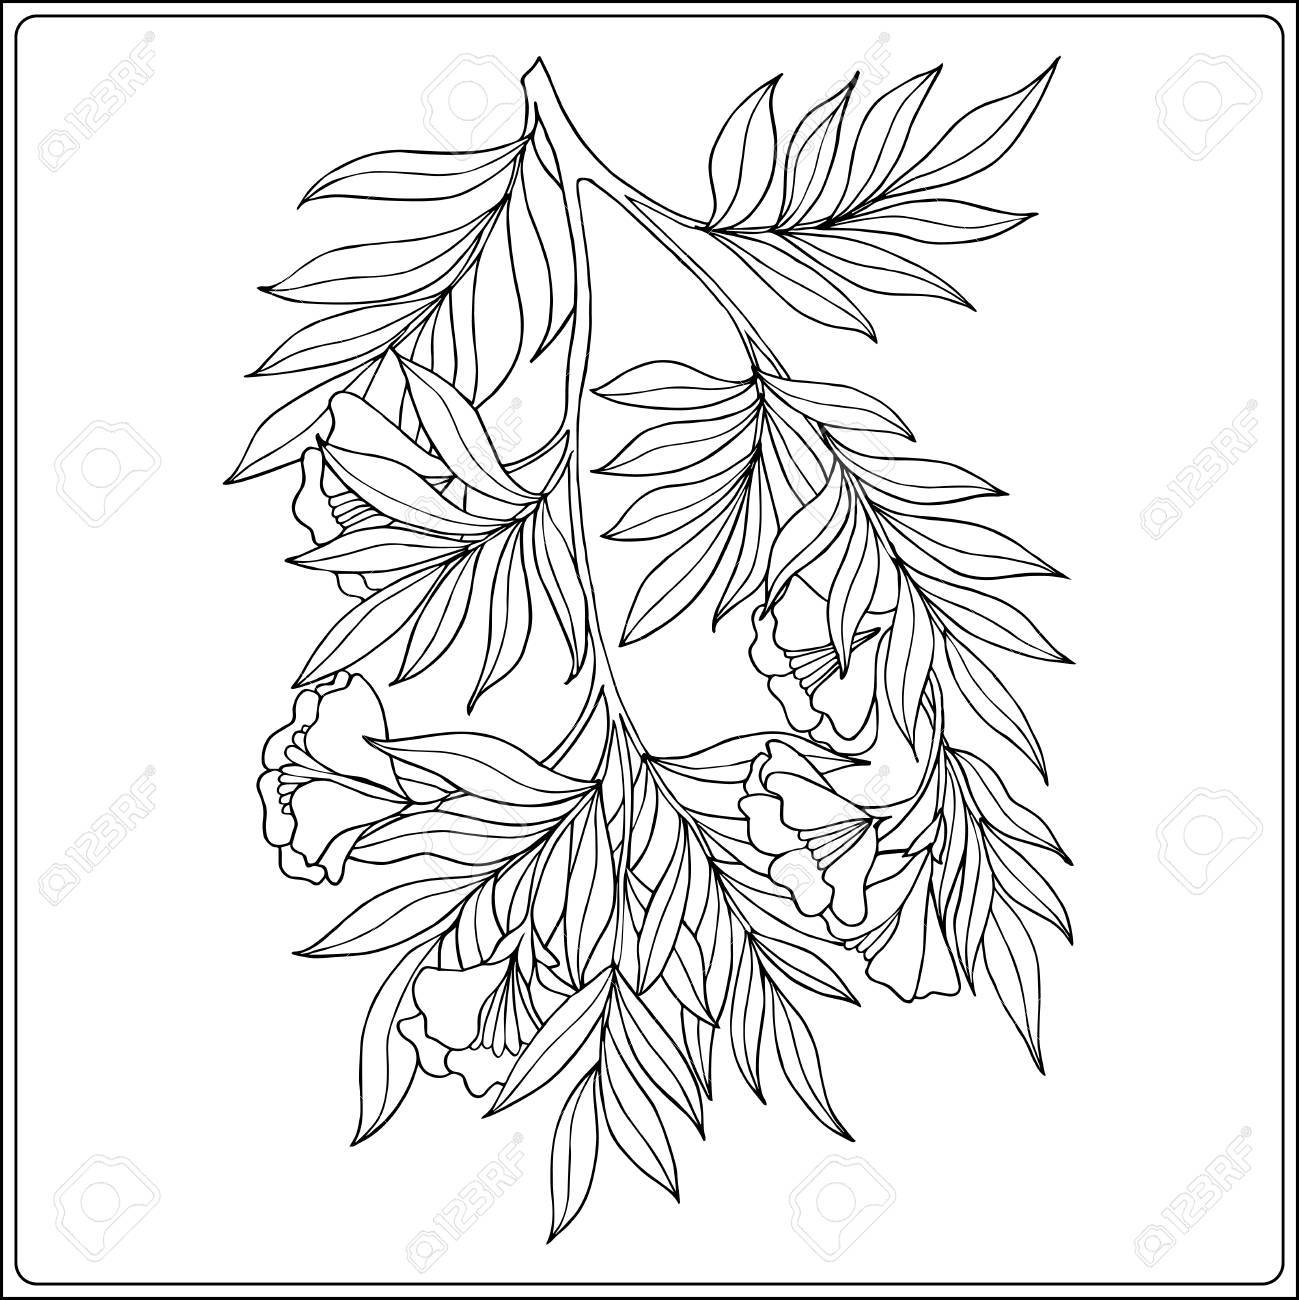 Co coloring book template - Co Coloring Book Flower Page Outline Decorative Branch With Flower In Vintage Style Coloring Book